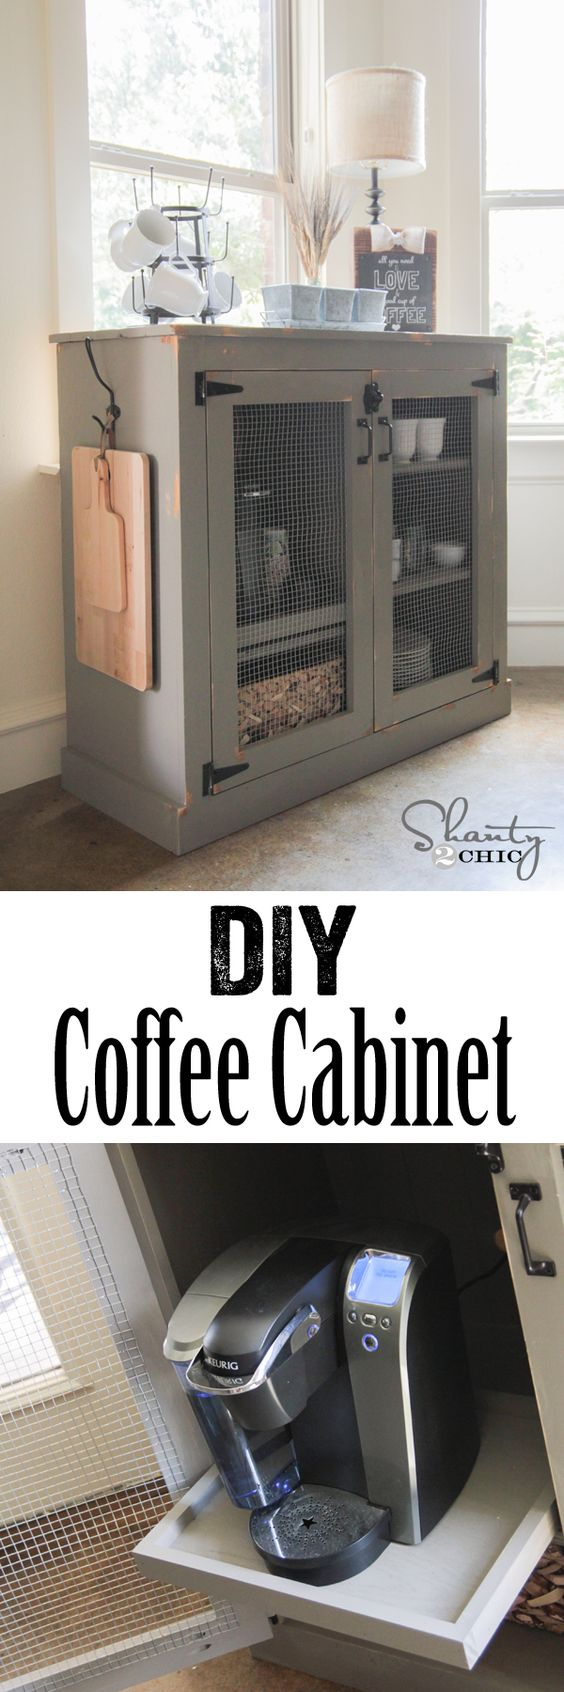 Free DIY Furniture Project Plan: Learn How to Build a Coffee Cabinet // Shanty-2-Chic.com